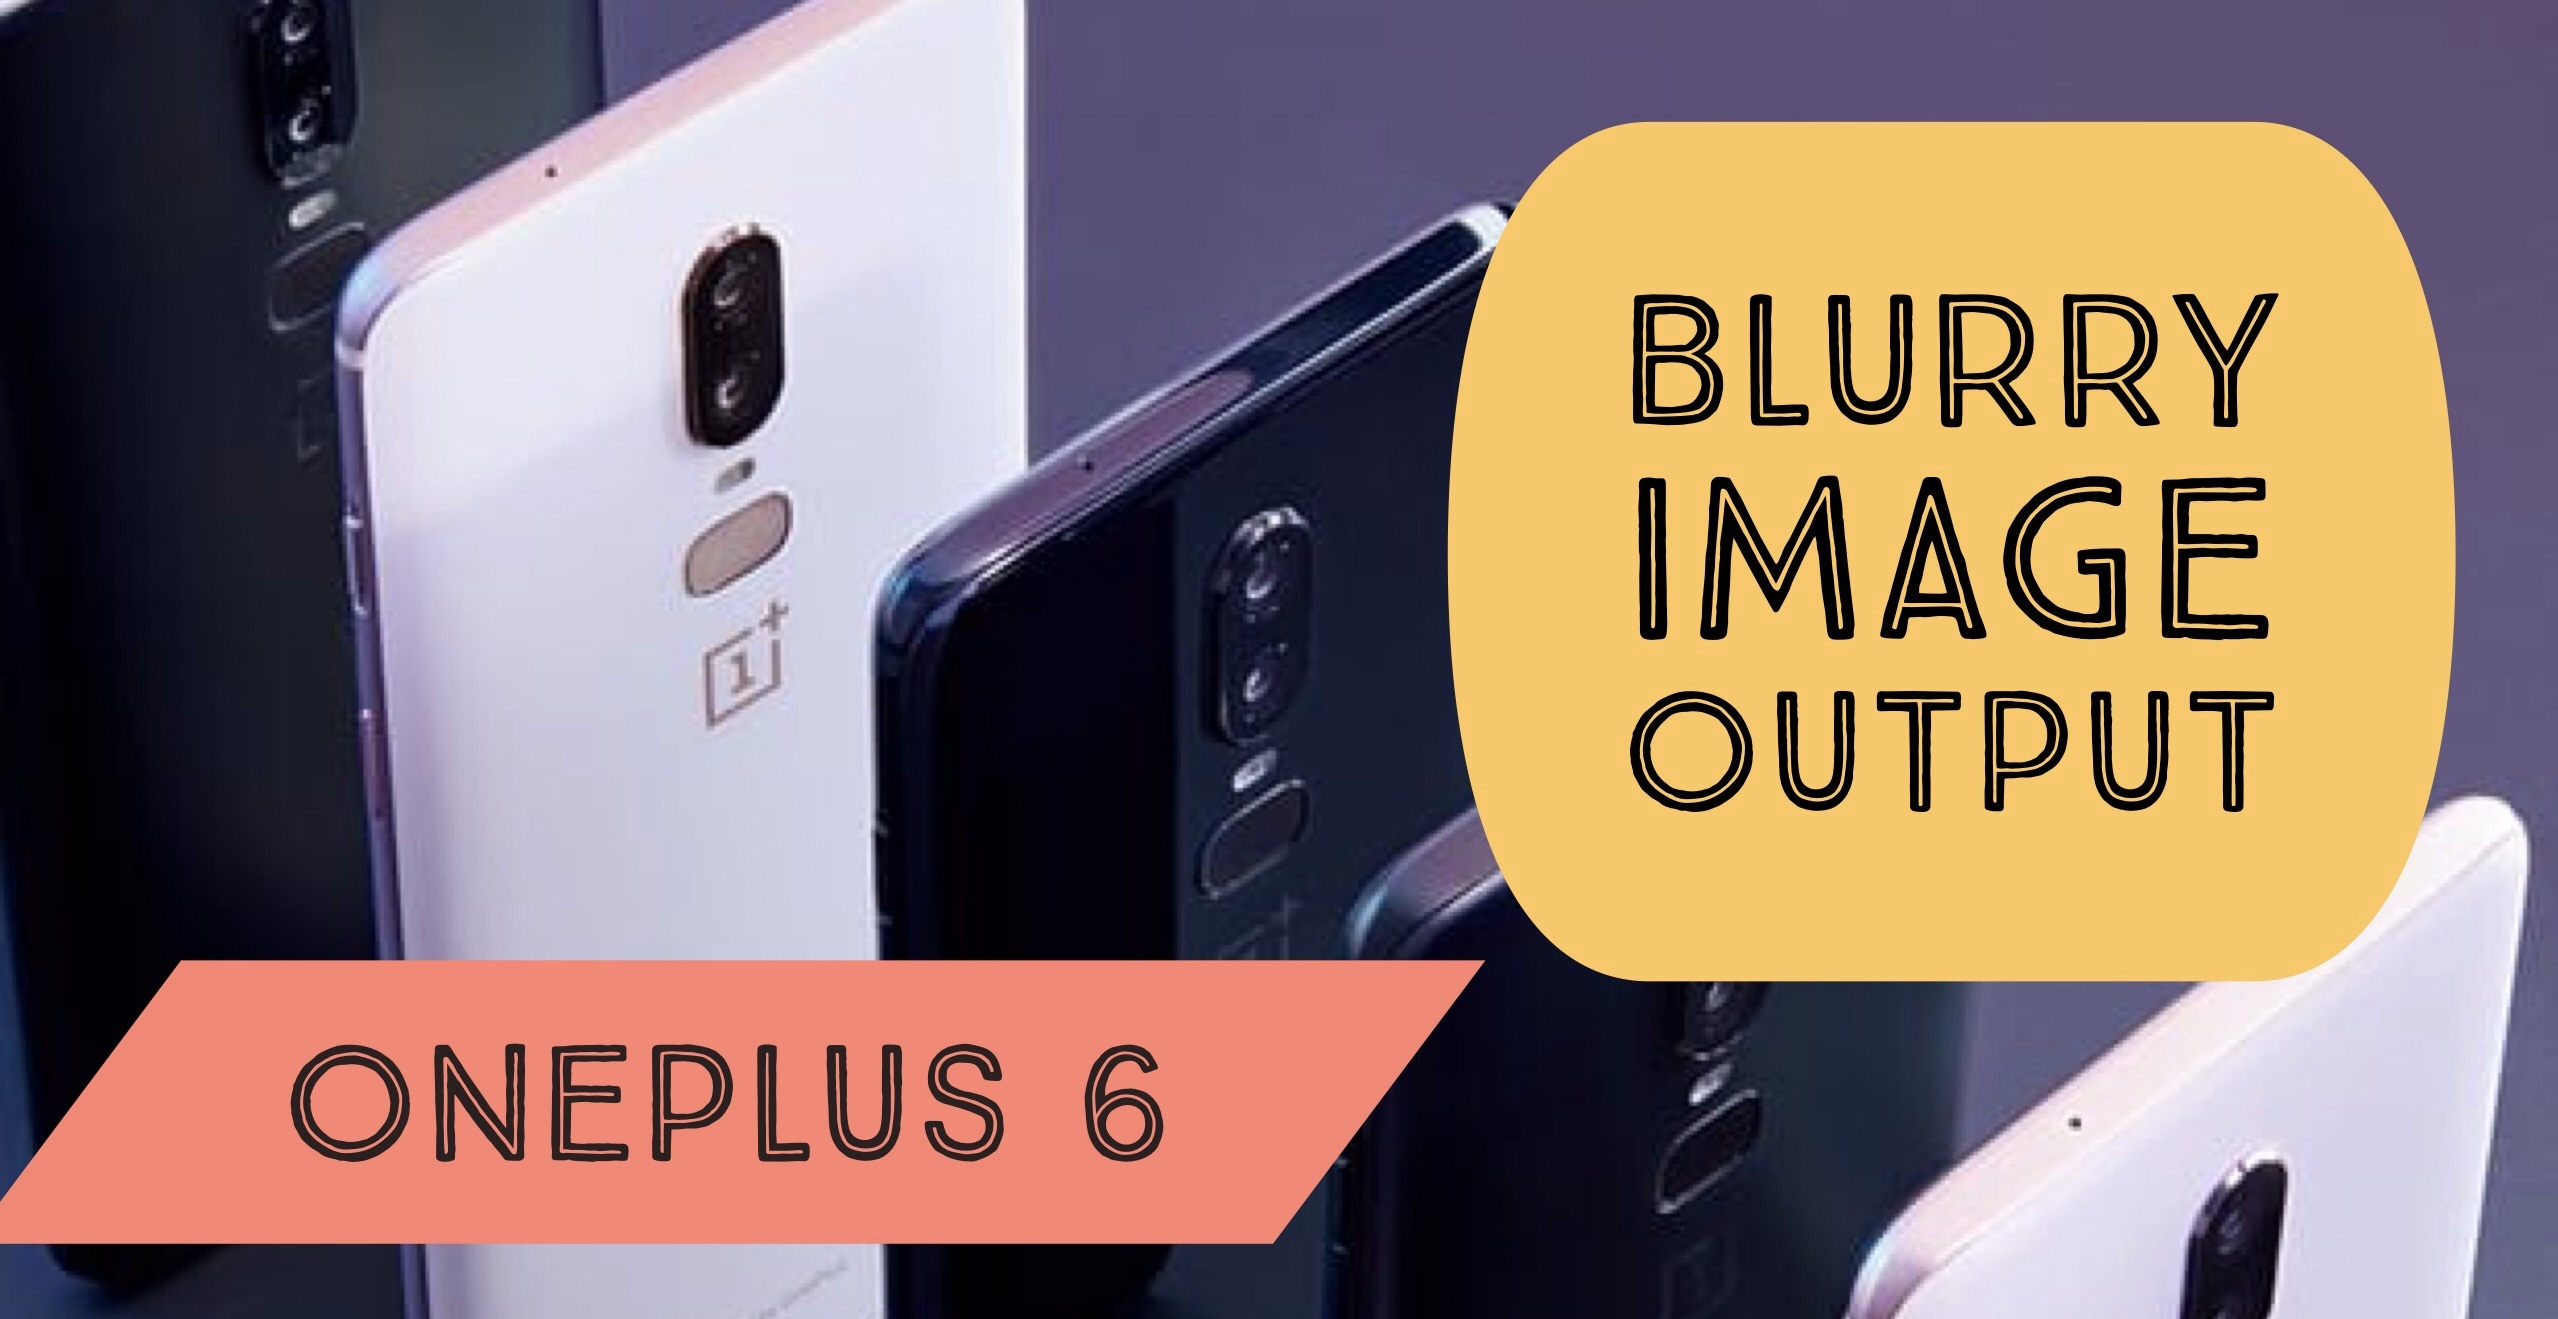 OnePlus 6 Producing Blurry Image Output : Wondering how to